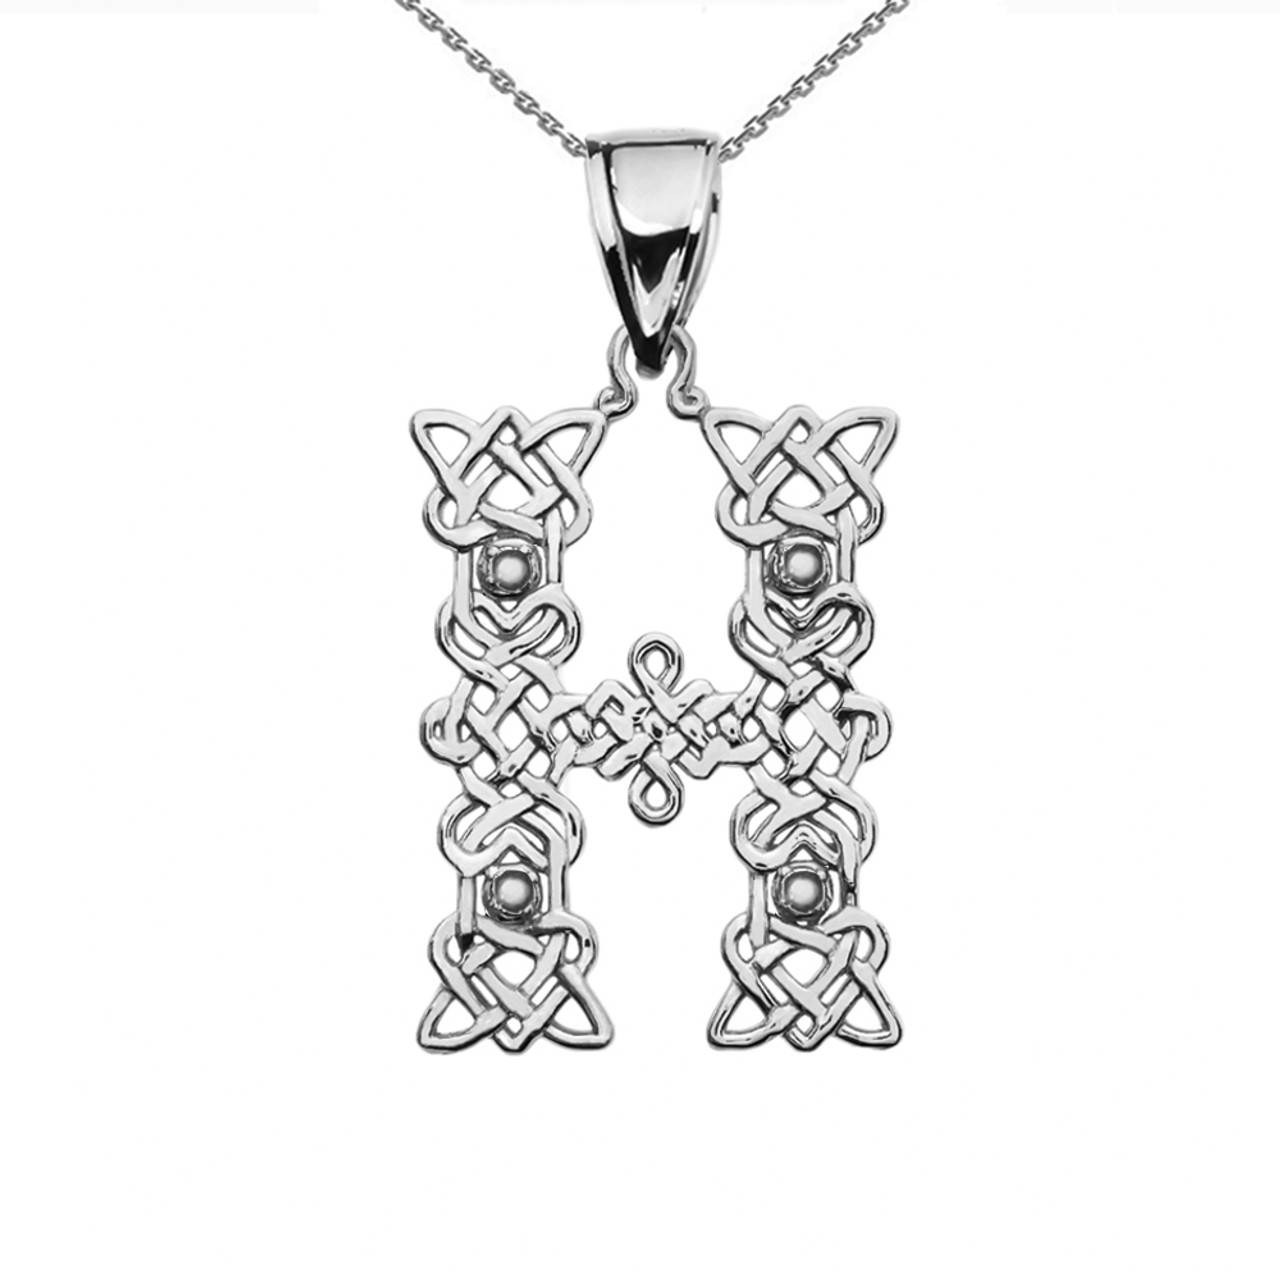 H initial in celtic pattern sterling silver pendant necklace h initial in celtic knot pattern sterling silver pendant necklace aloadofball Gallery